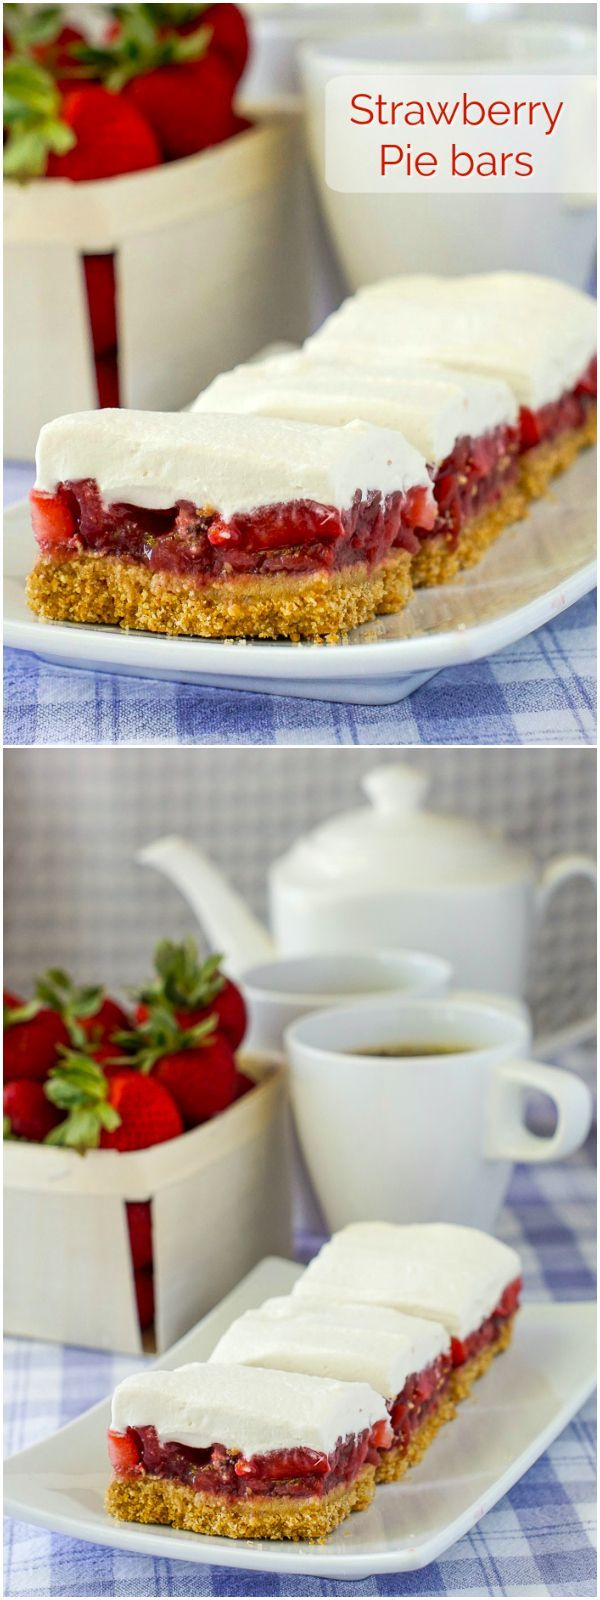 Strawberry Pie Bars – with no artificial colours or flavours. Our fresh strawberry pie filling meets a graham cracker crust in these easy to make dessert bars.